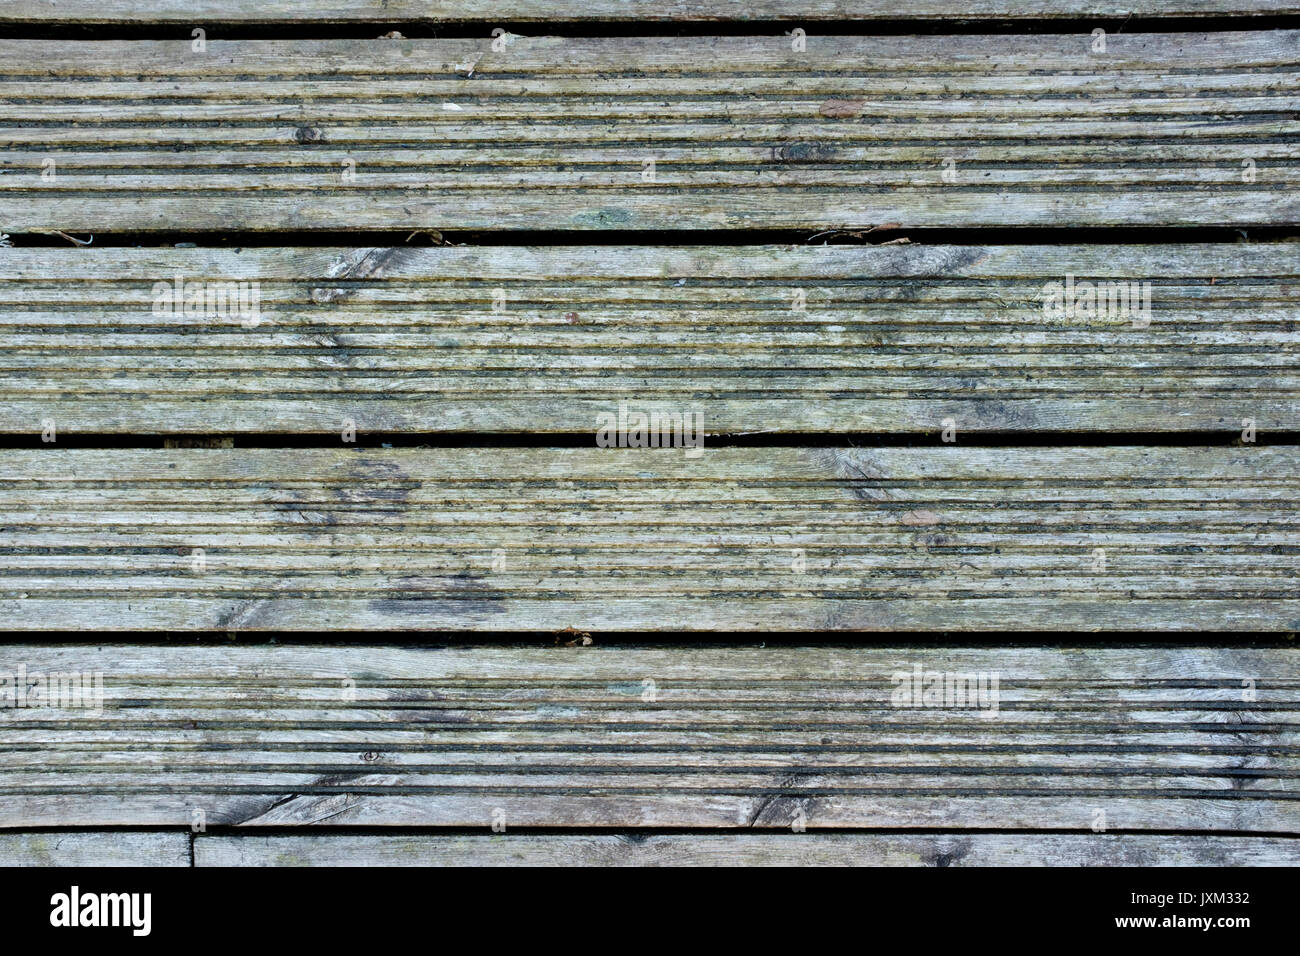 Detail of grey wooden decking with green mould in need of jet washing - Stock Image